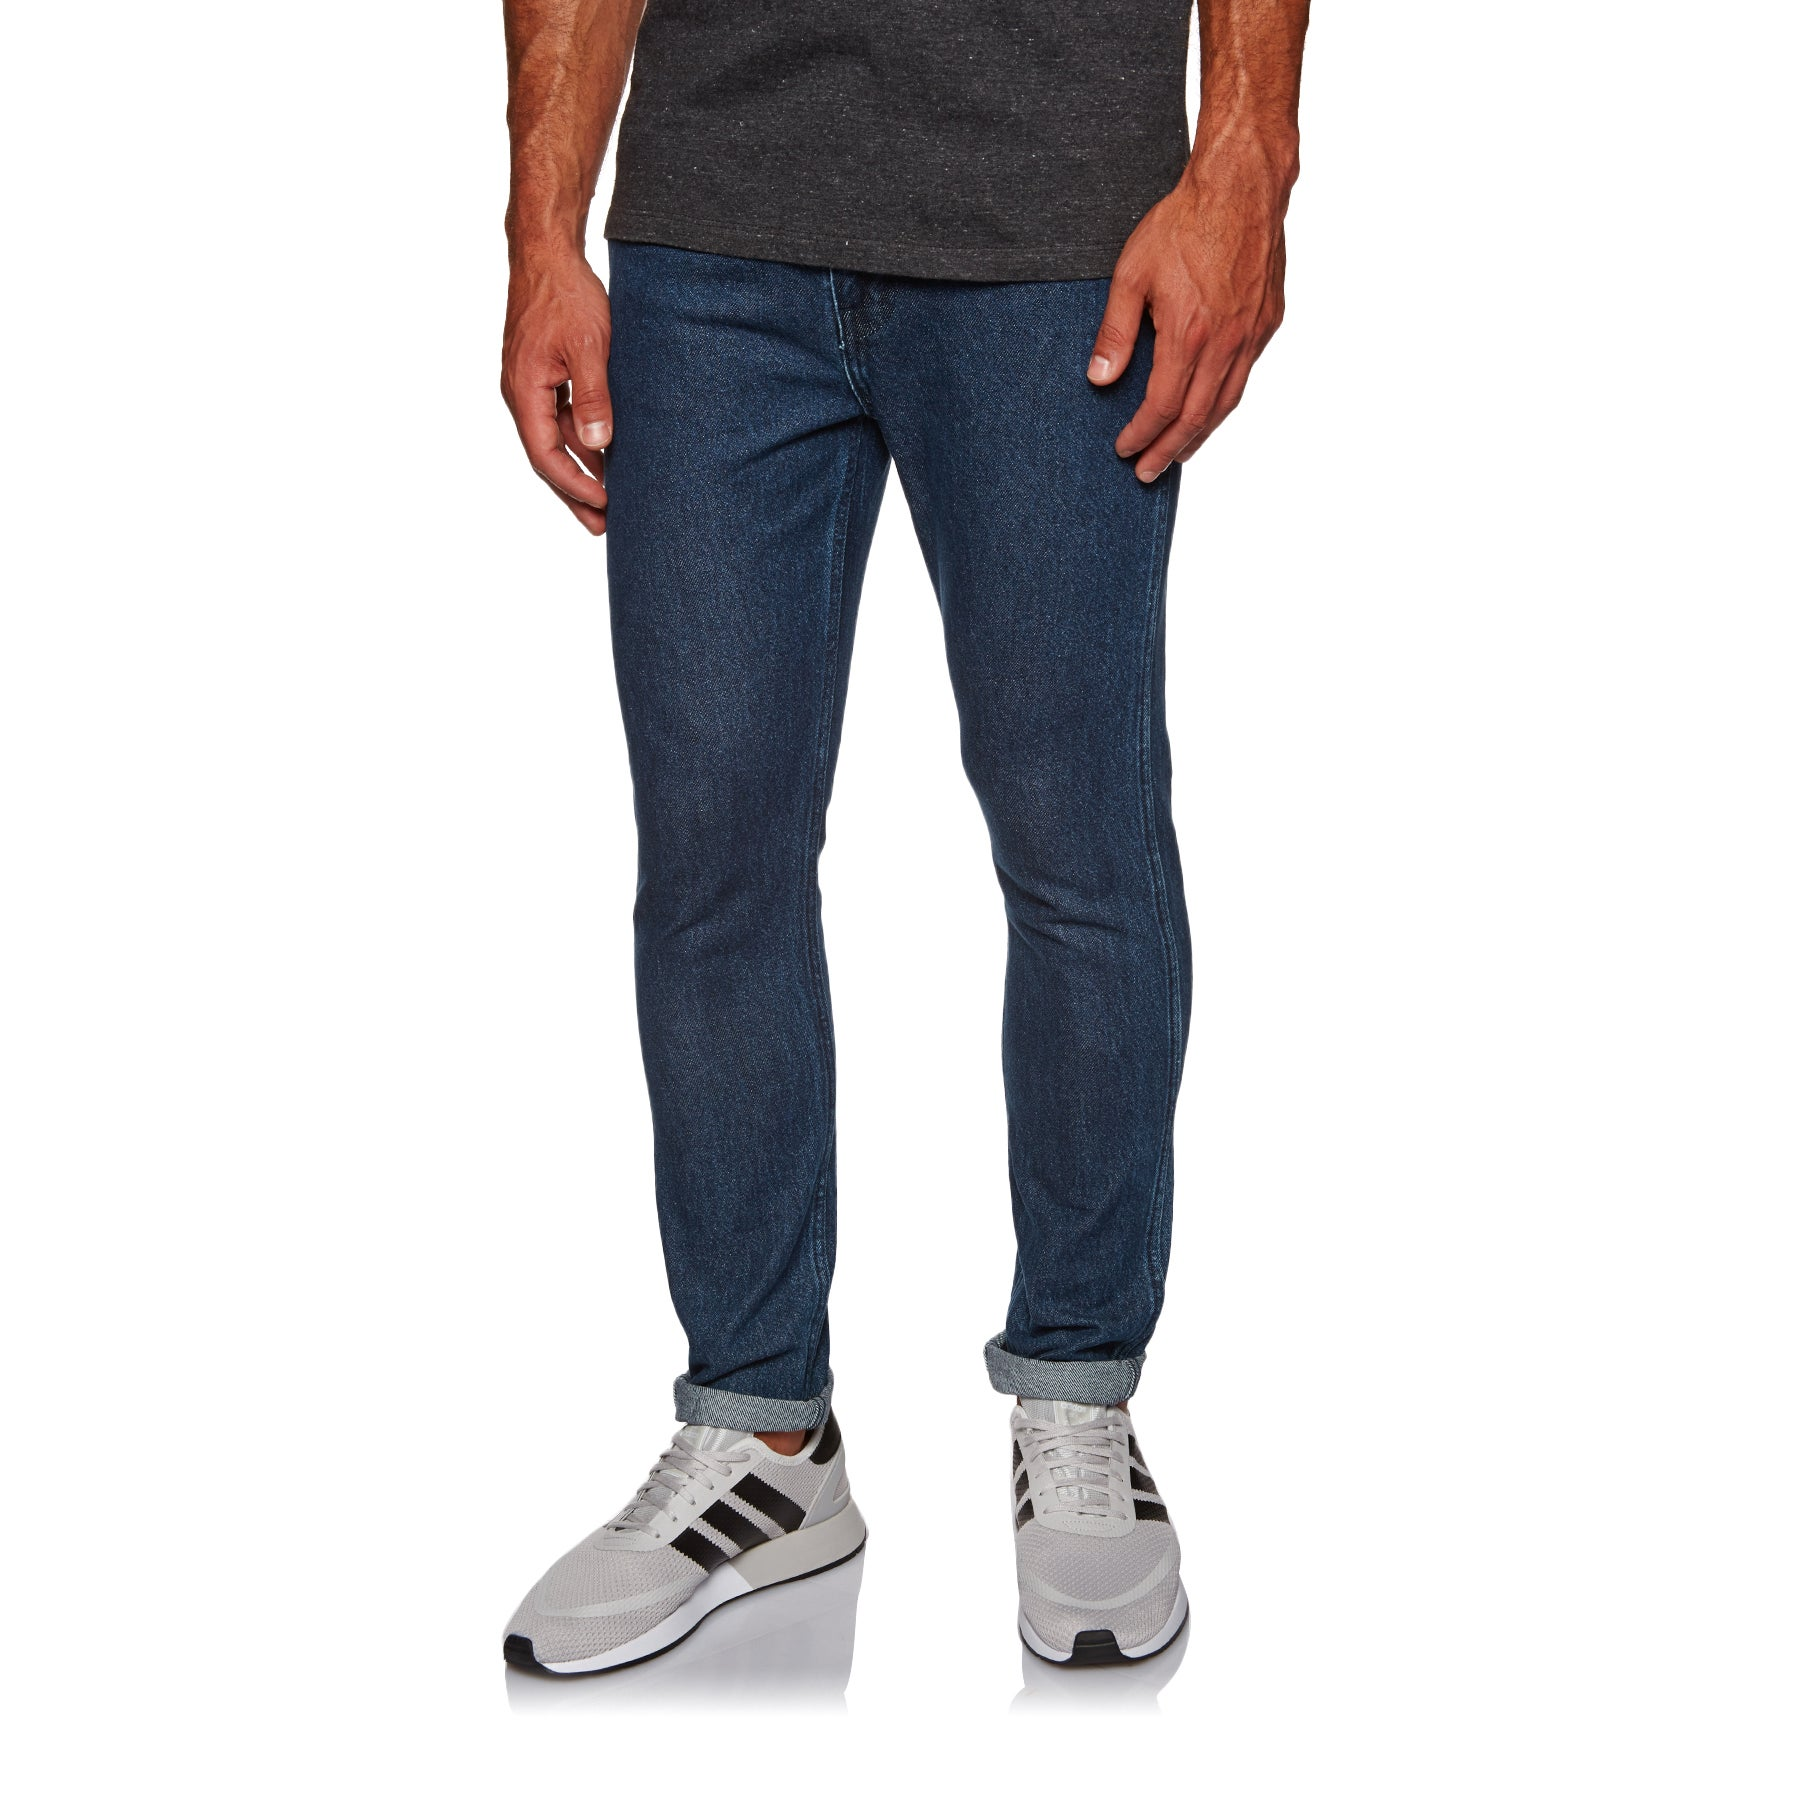 Levis L8 Slim Taper Jeans - Fences L8